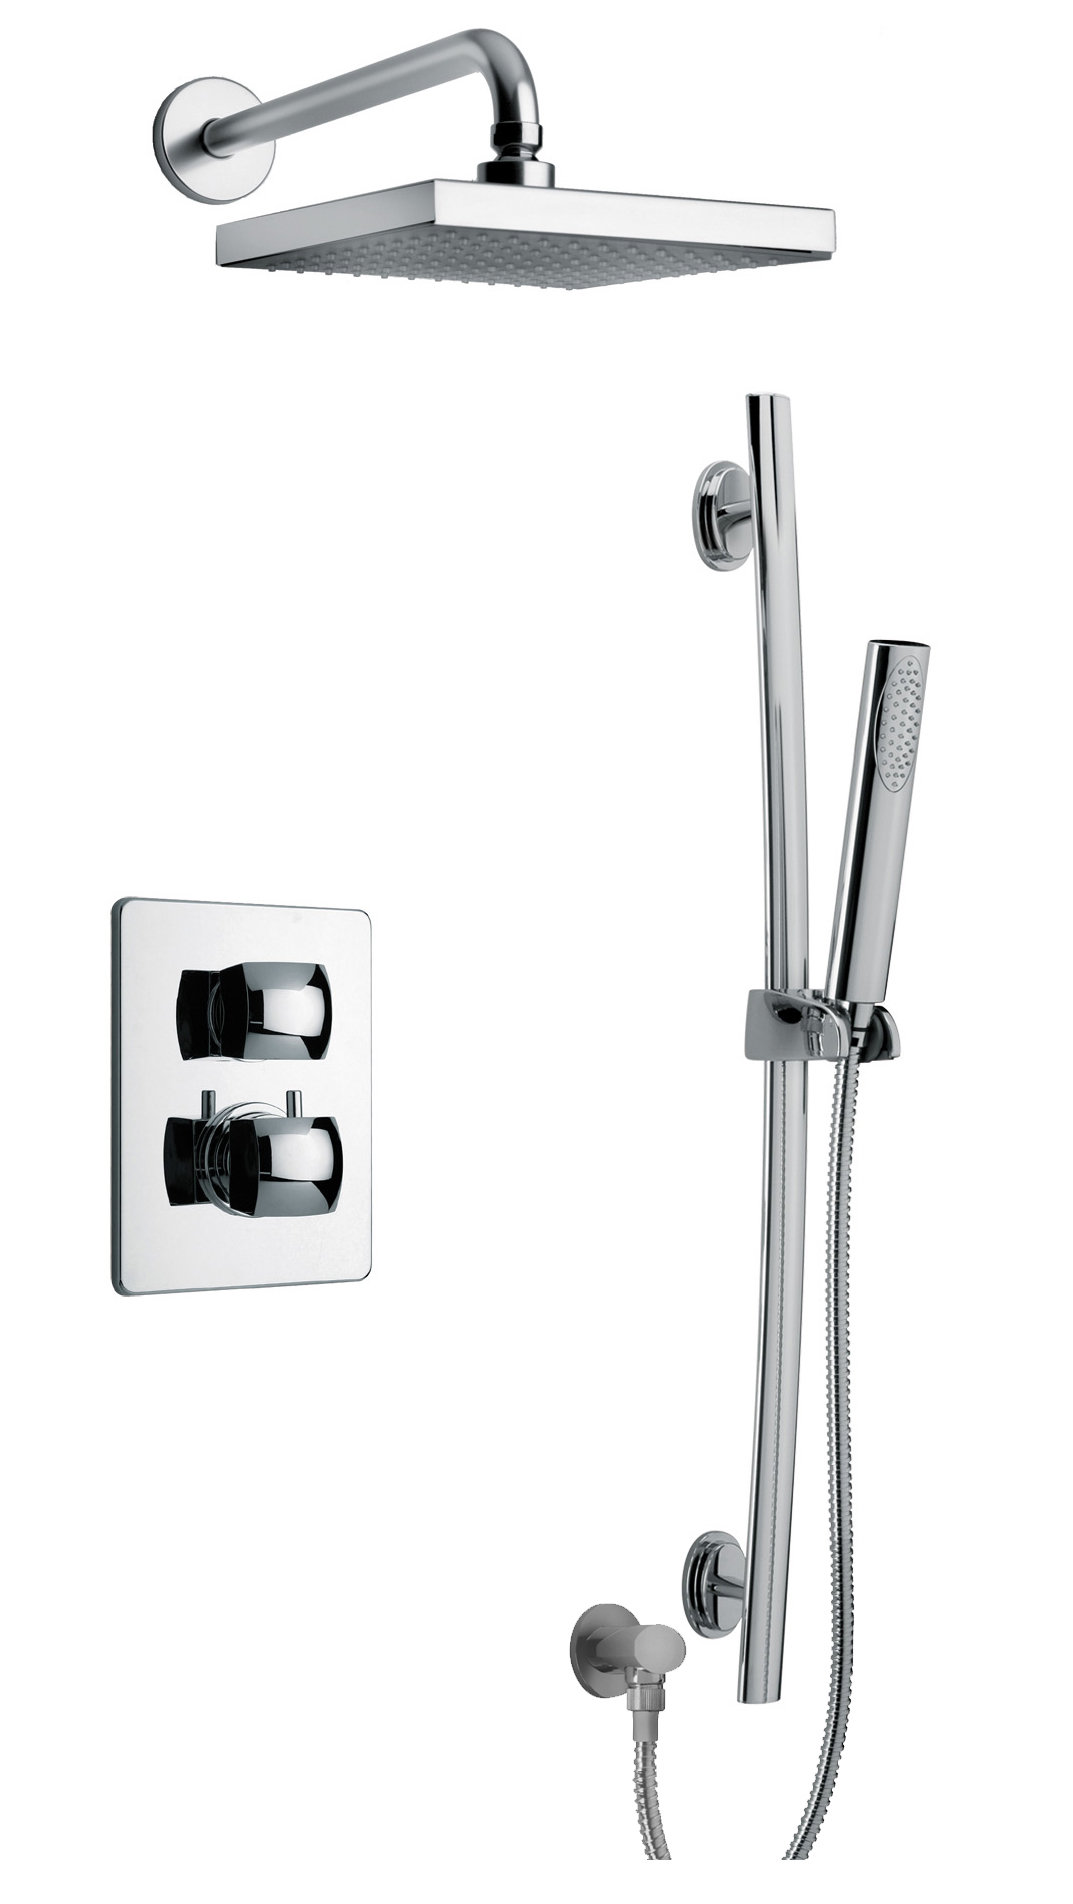 Thermostatic Shower With 2-Way Diverter Volume Control and Slide Bar in Chrome